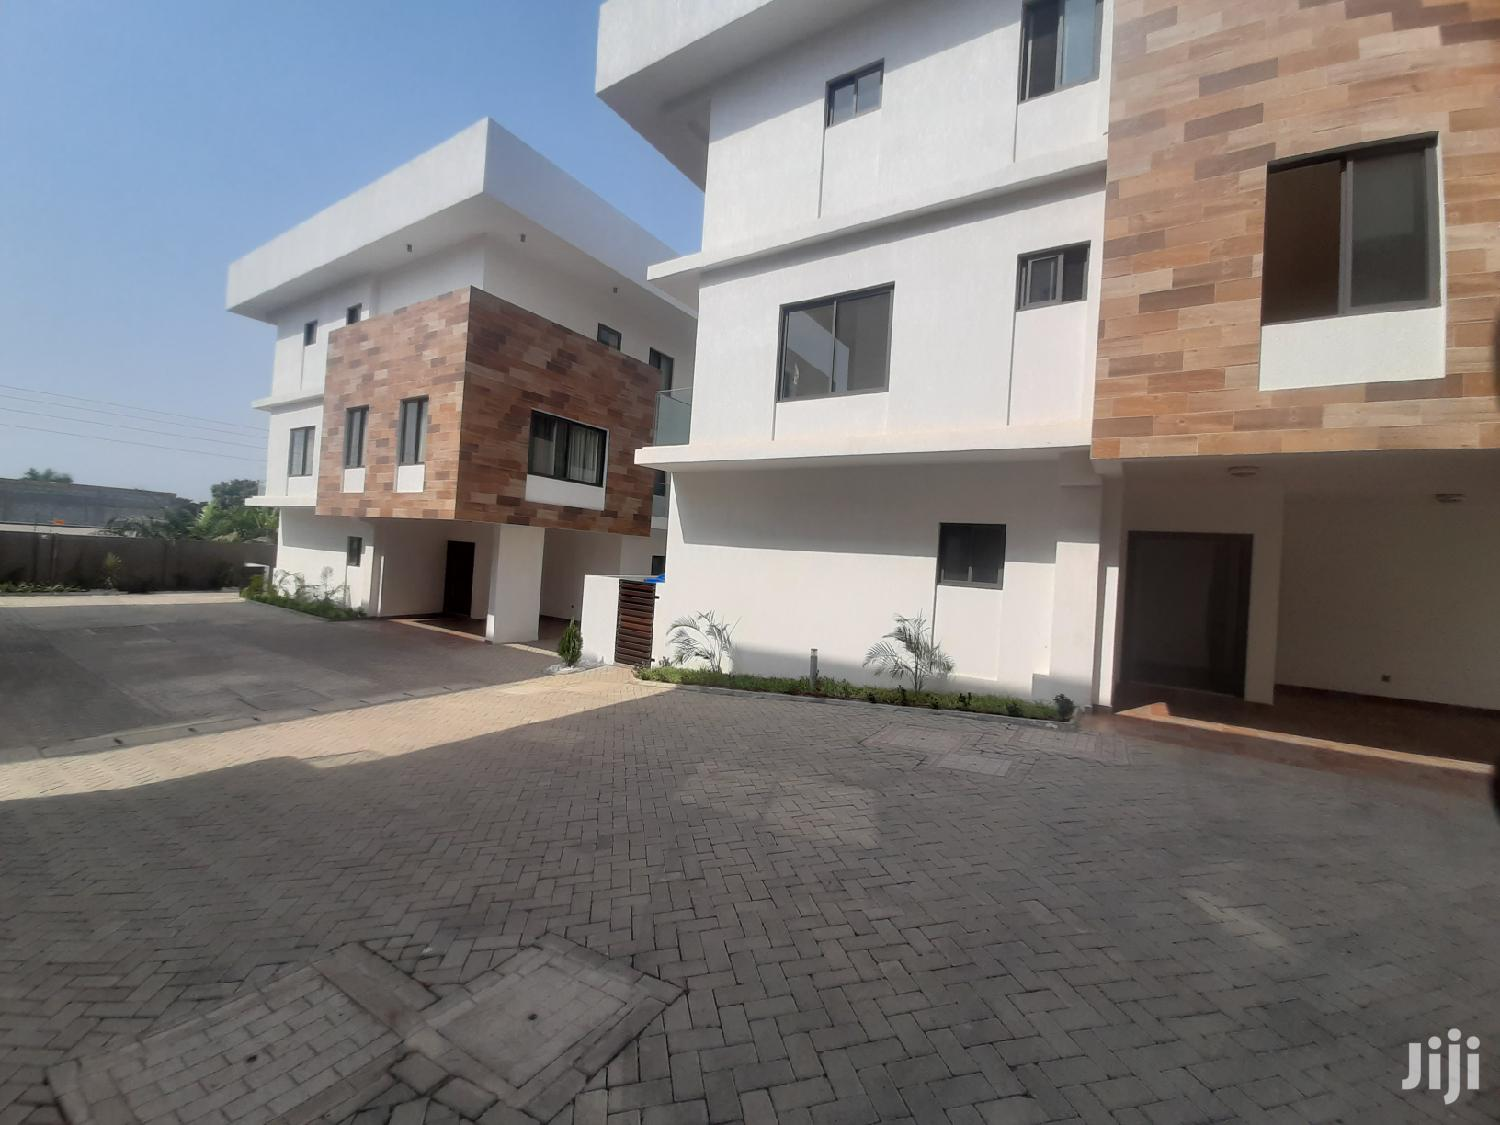 Executive 4 Bedroom Townhouse Airport Residential Area   Houses & Apartments For Rent for sale in Airport Residential Area, Greater Accra, Ghana